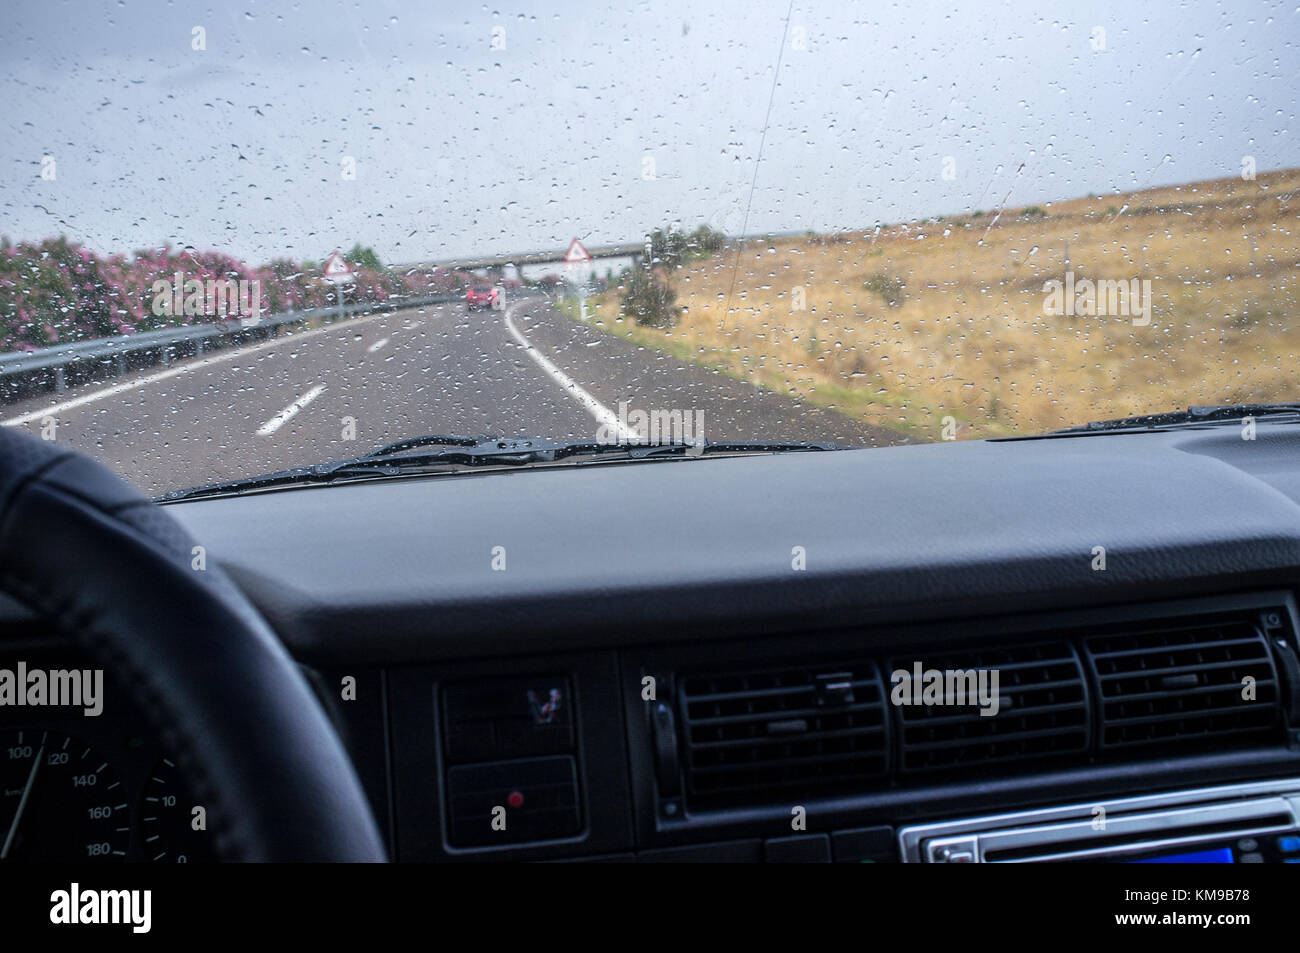 Driving on a highway in the rain. View from the inside of the car - Stock Image